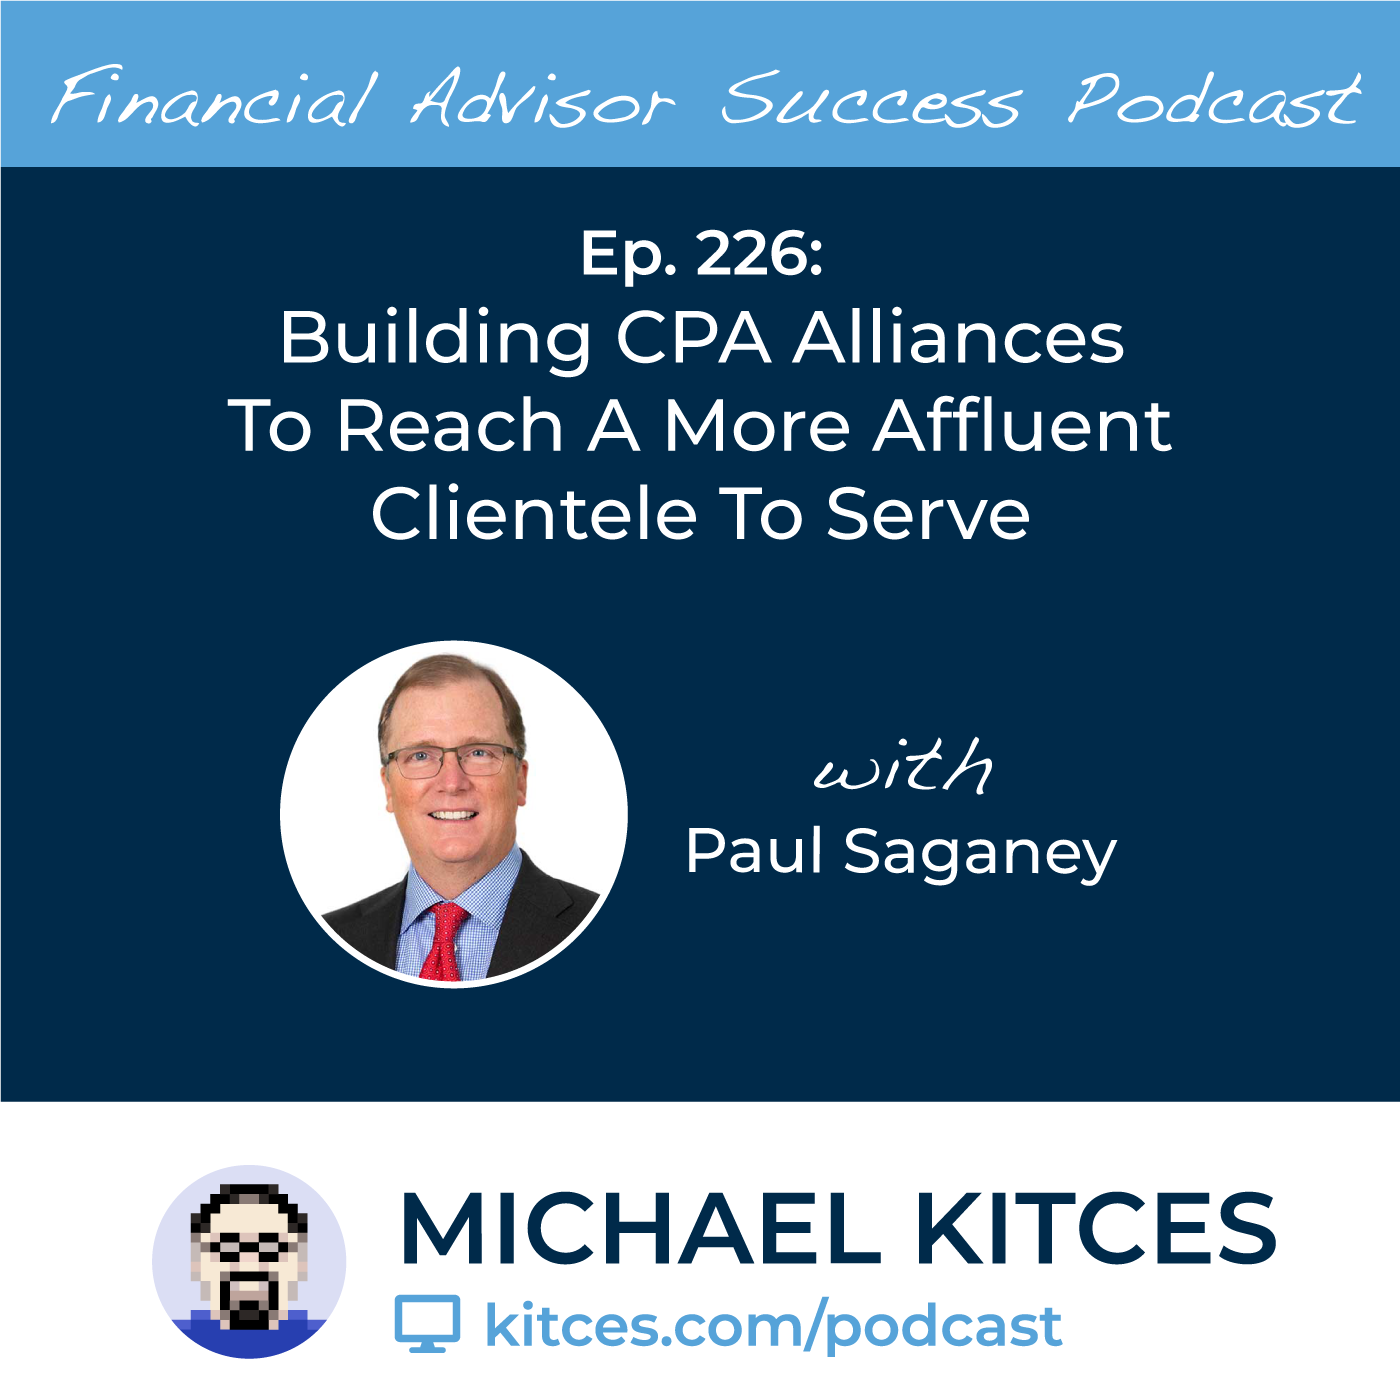 Ep 226: Building CPA Alliances To Reach A More Affluent Clientele To Serve with Paul Saganey